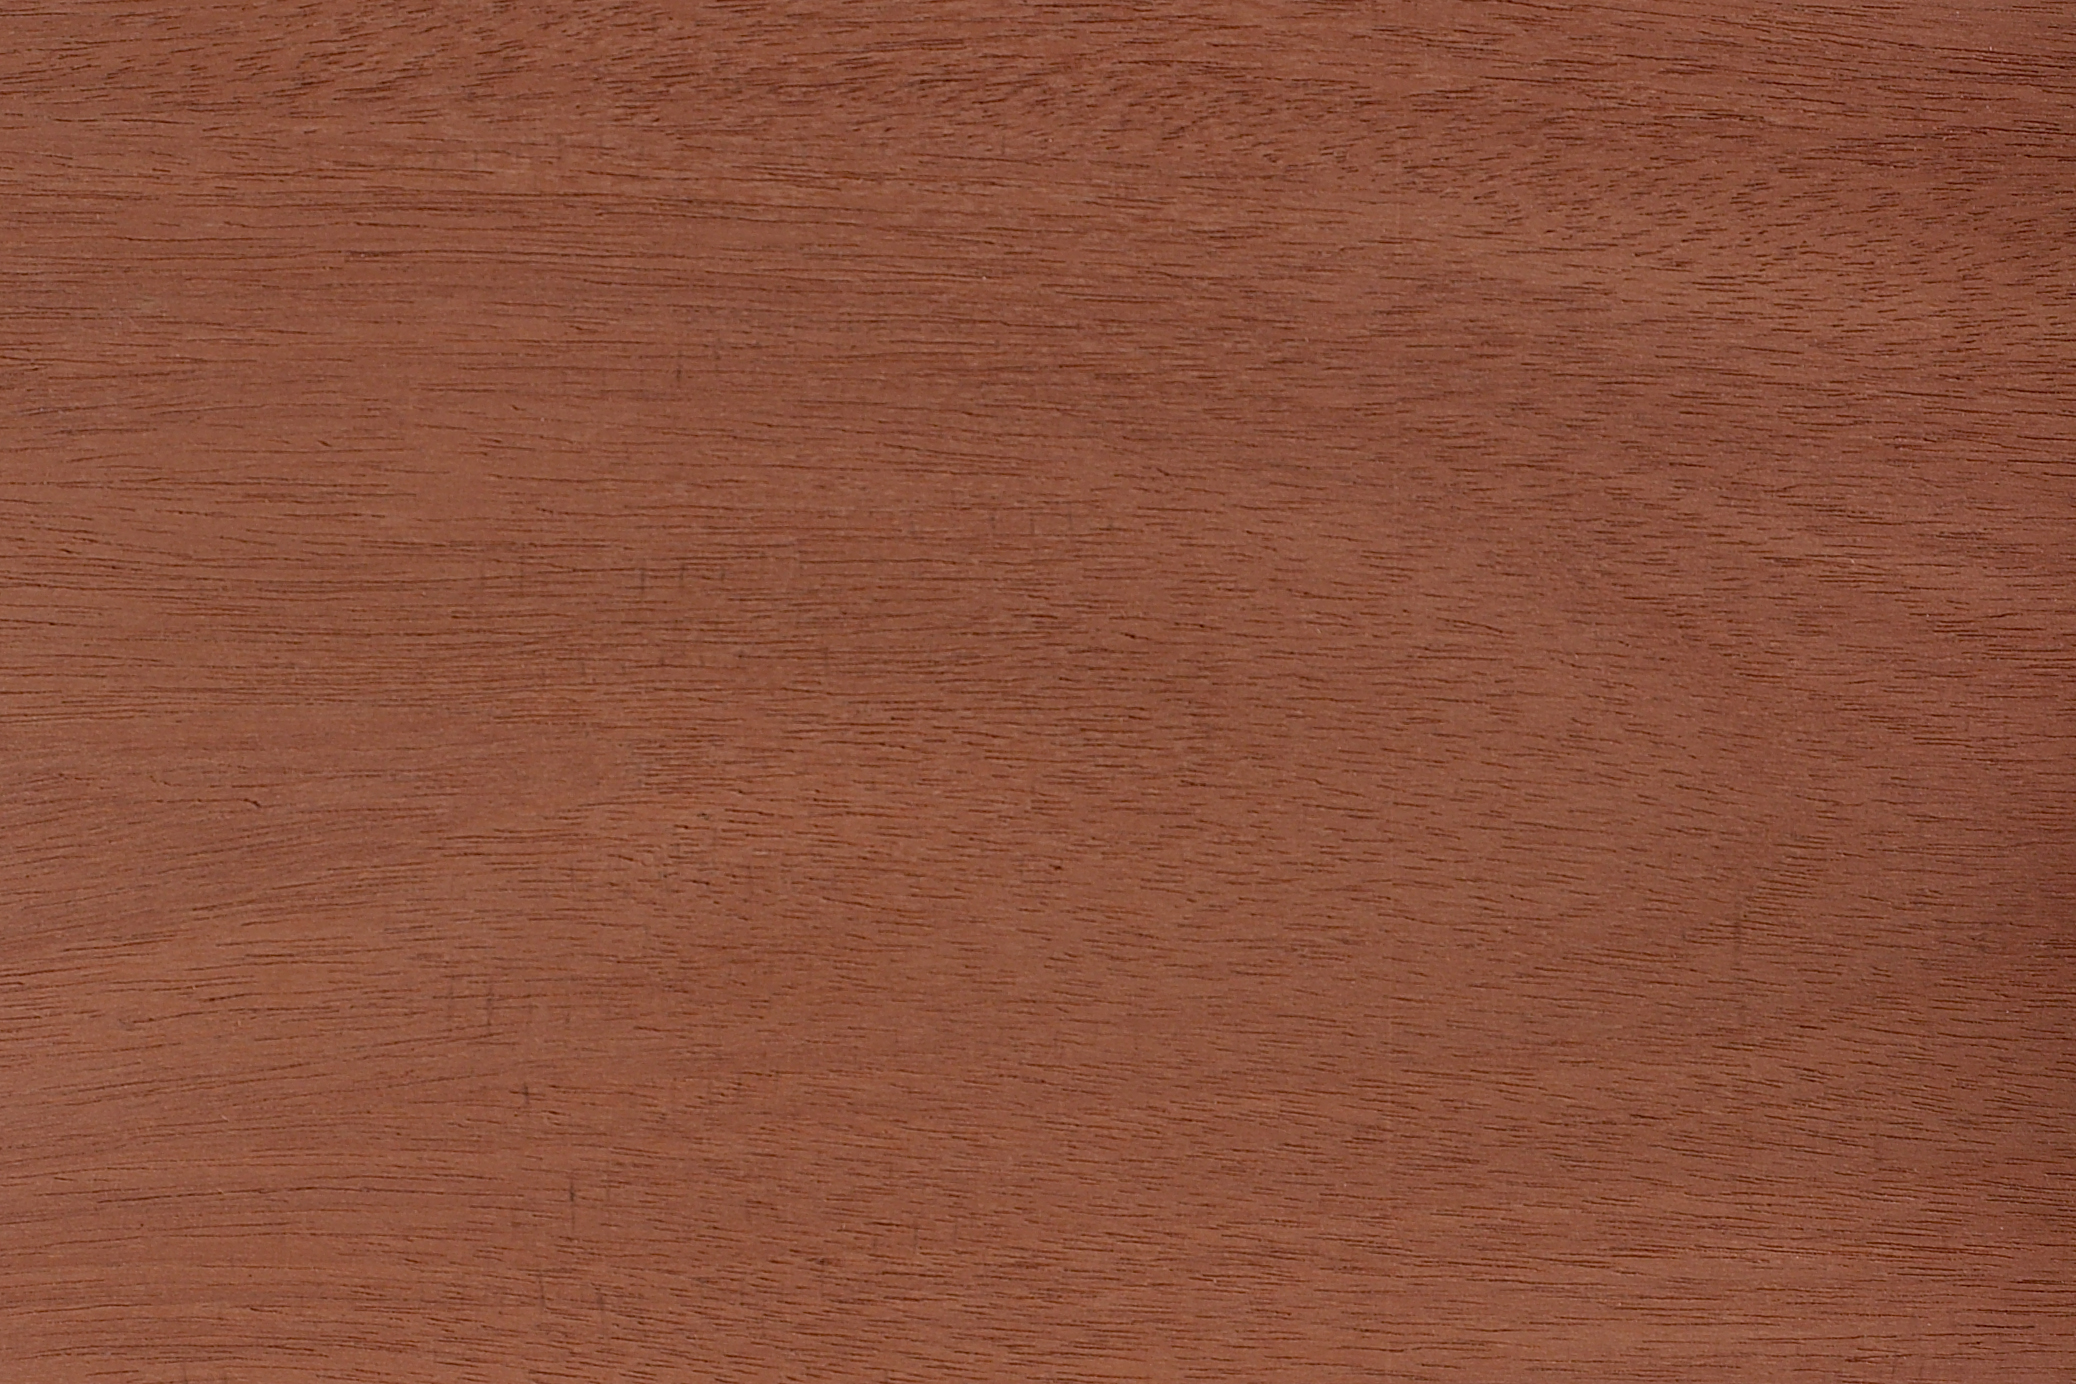 Exotic Wood Texture Pack